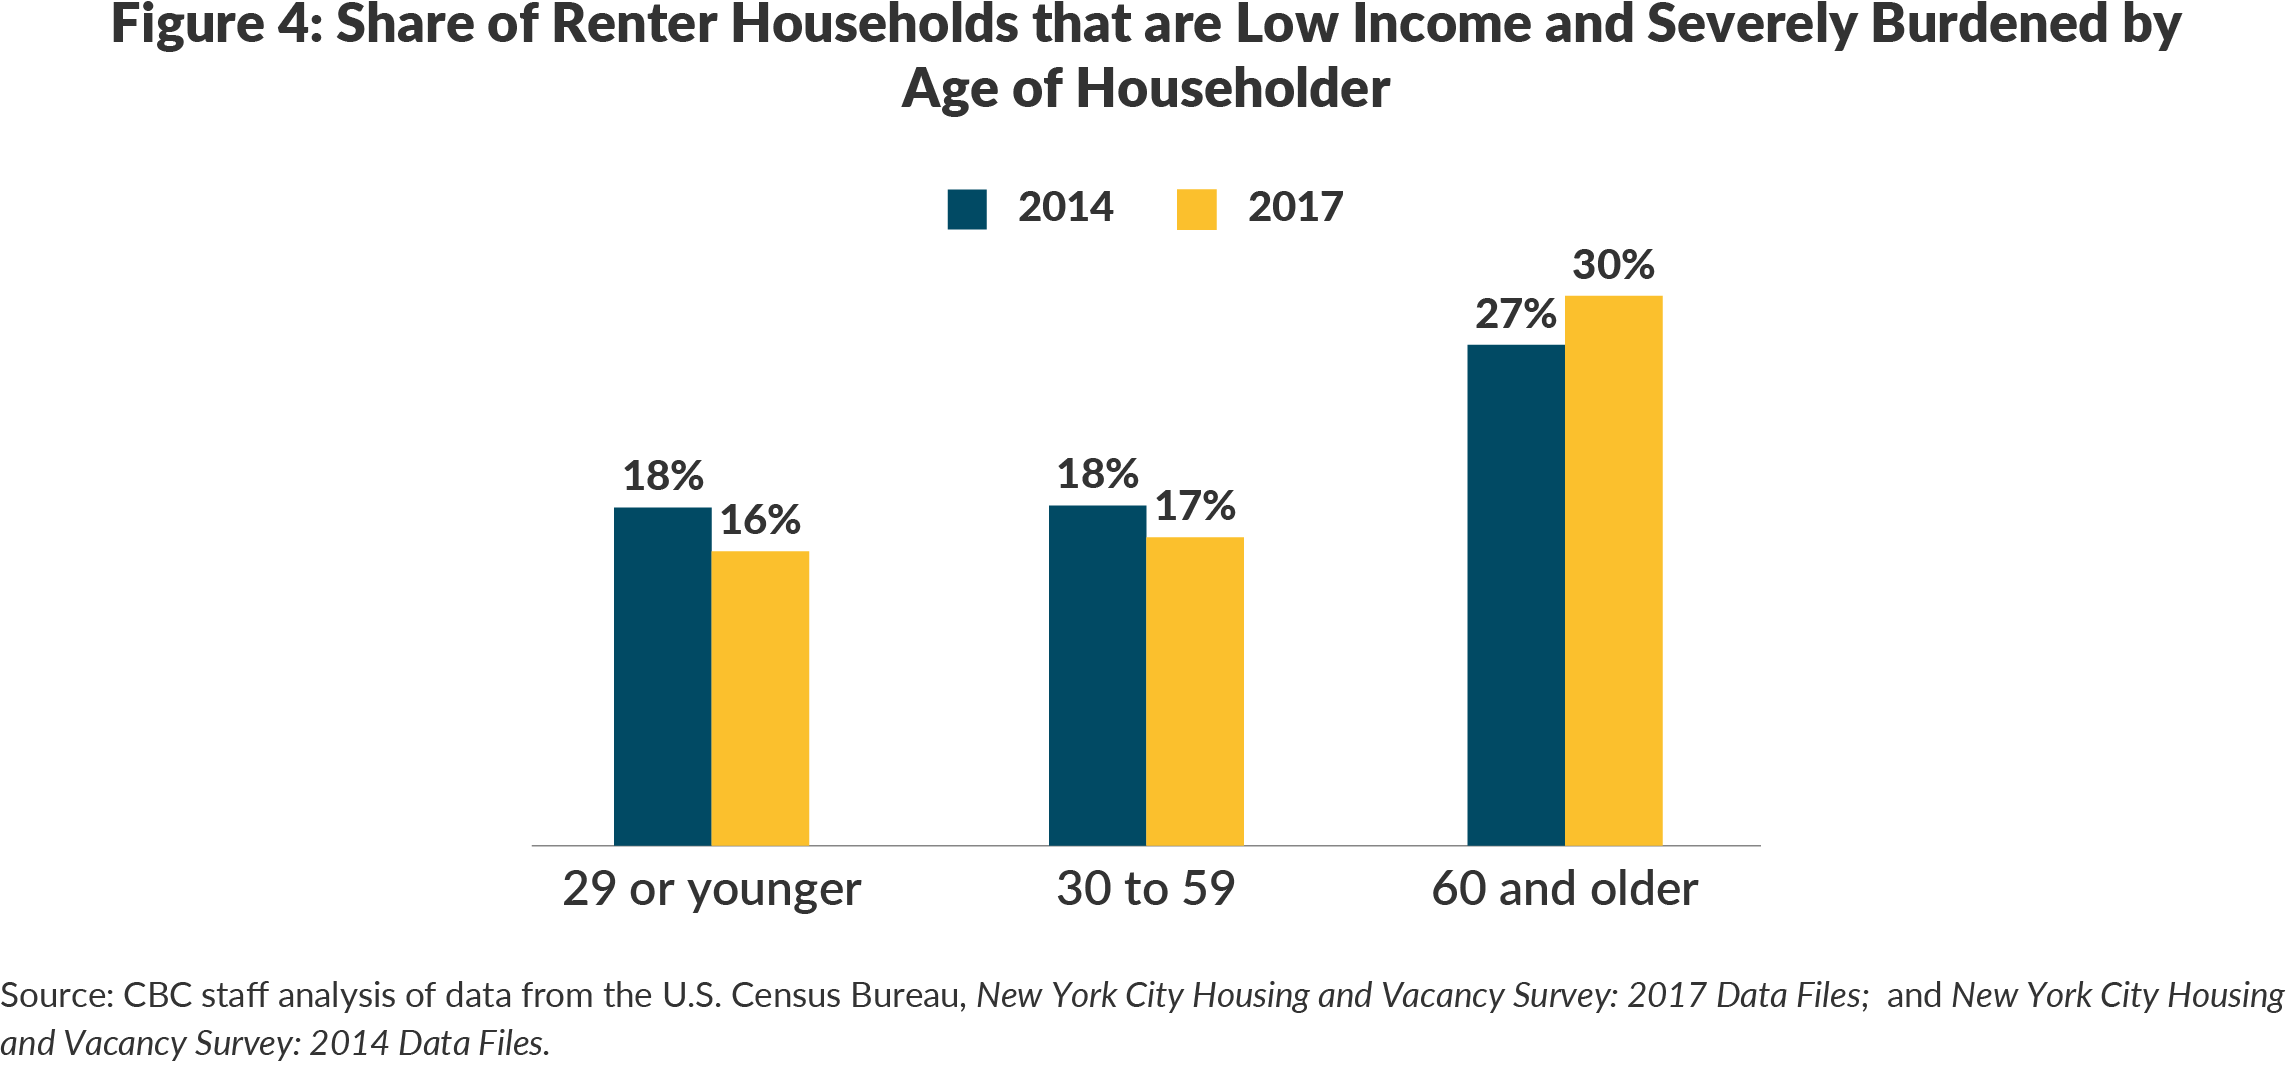 Figure 4. Share of Renter Households that are Low Income and Severely Burdened by Age of Householder